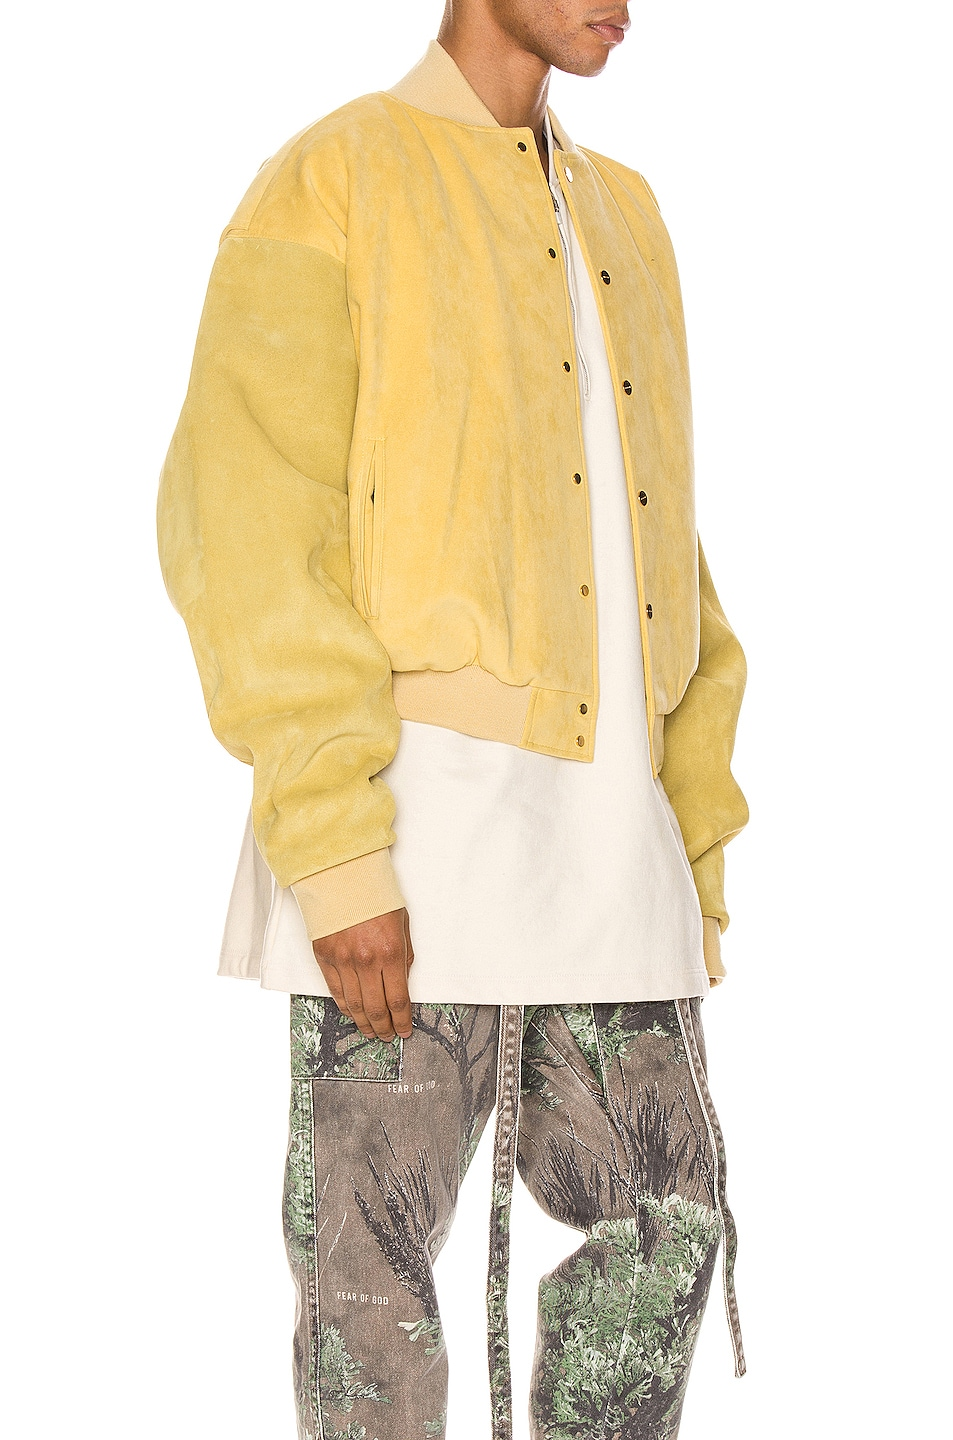 Image 4 of Fear of God 6th Collection Varsity Jacket in Garden Glove Yellow